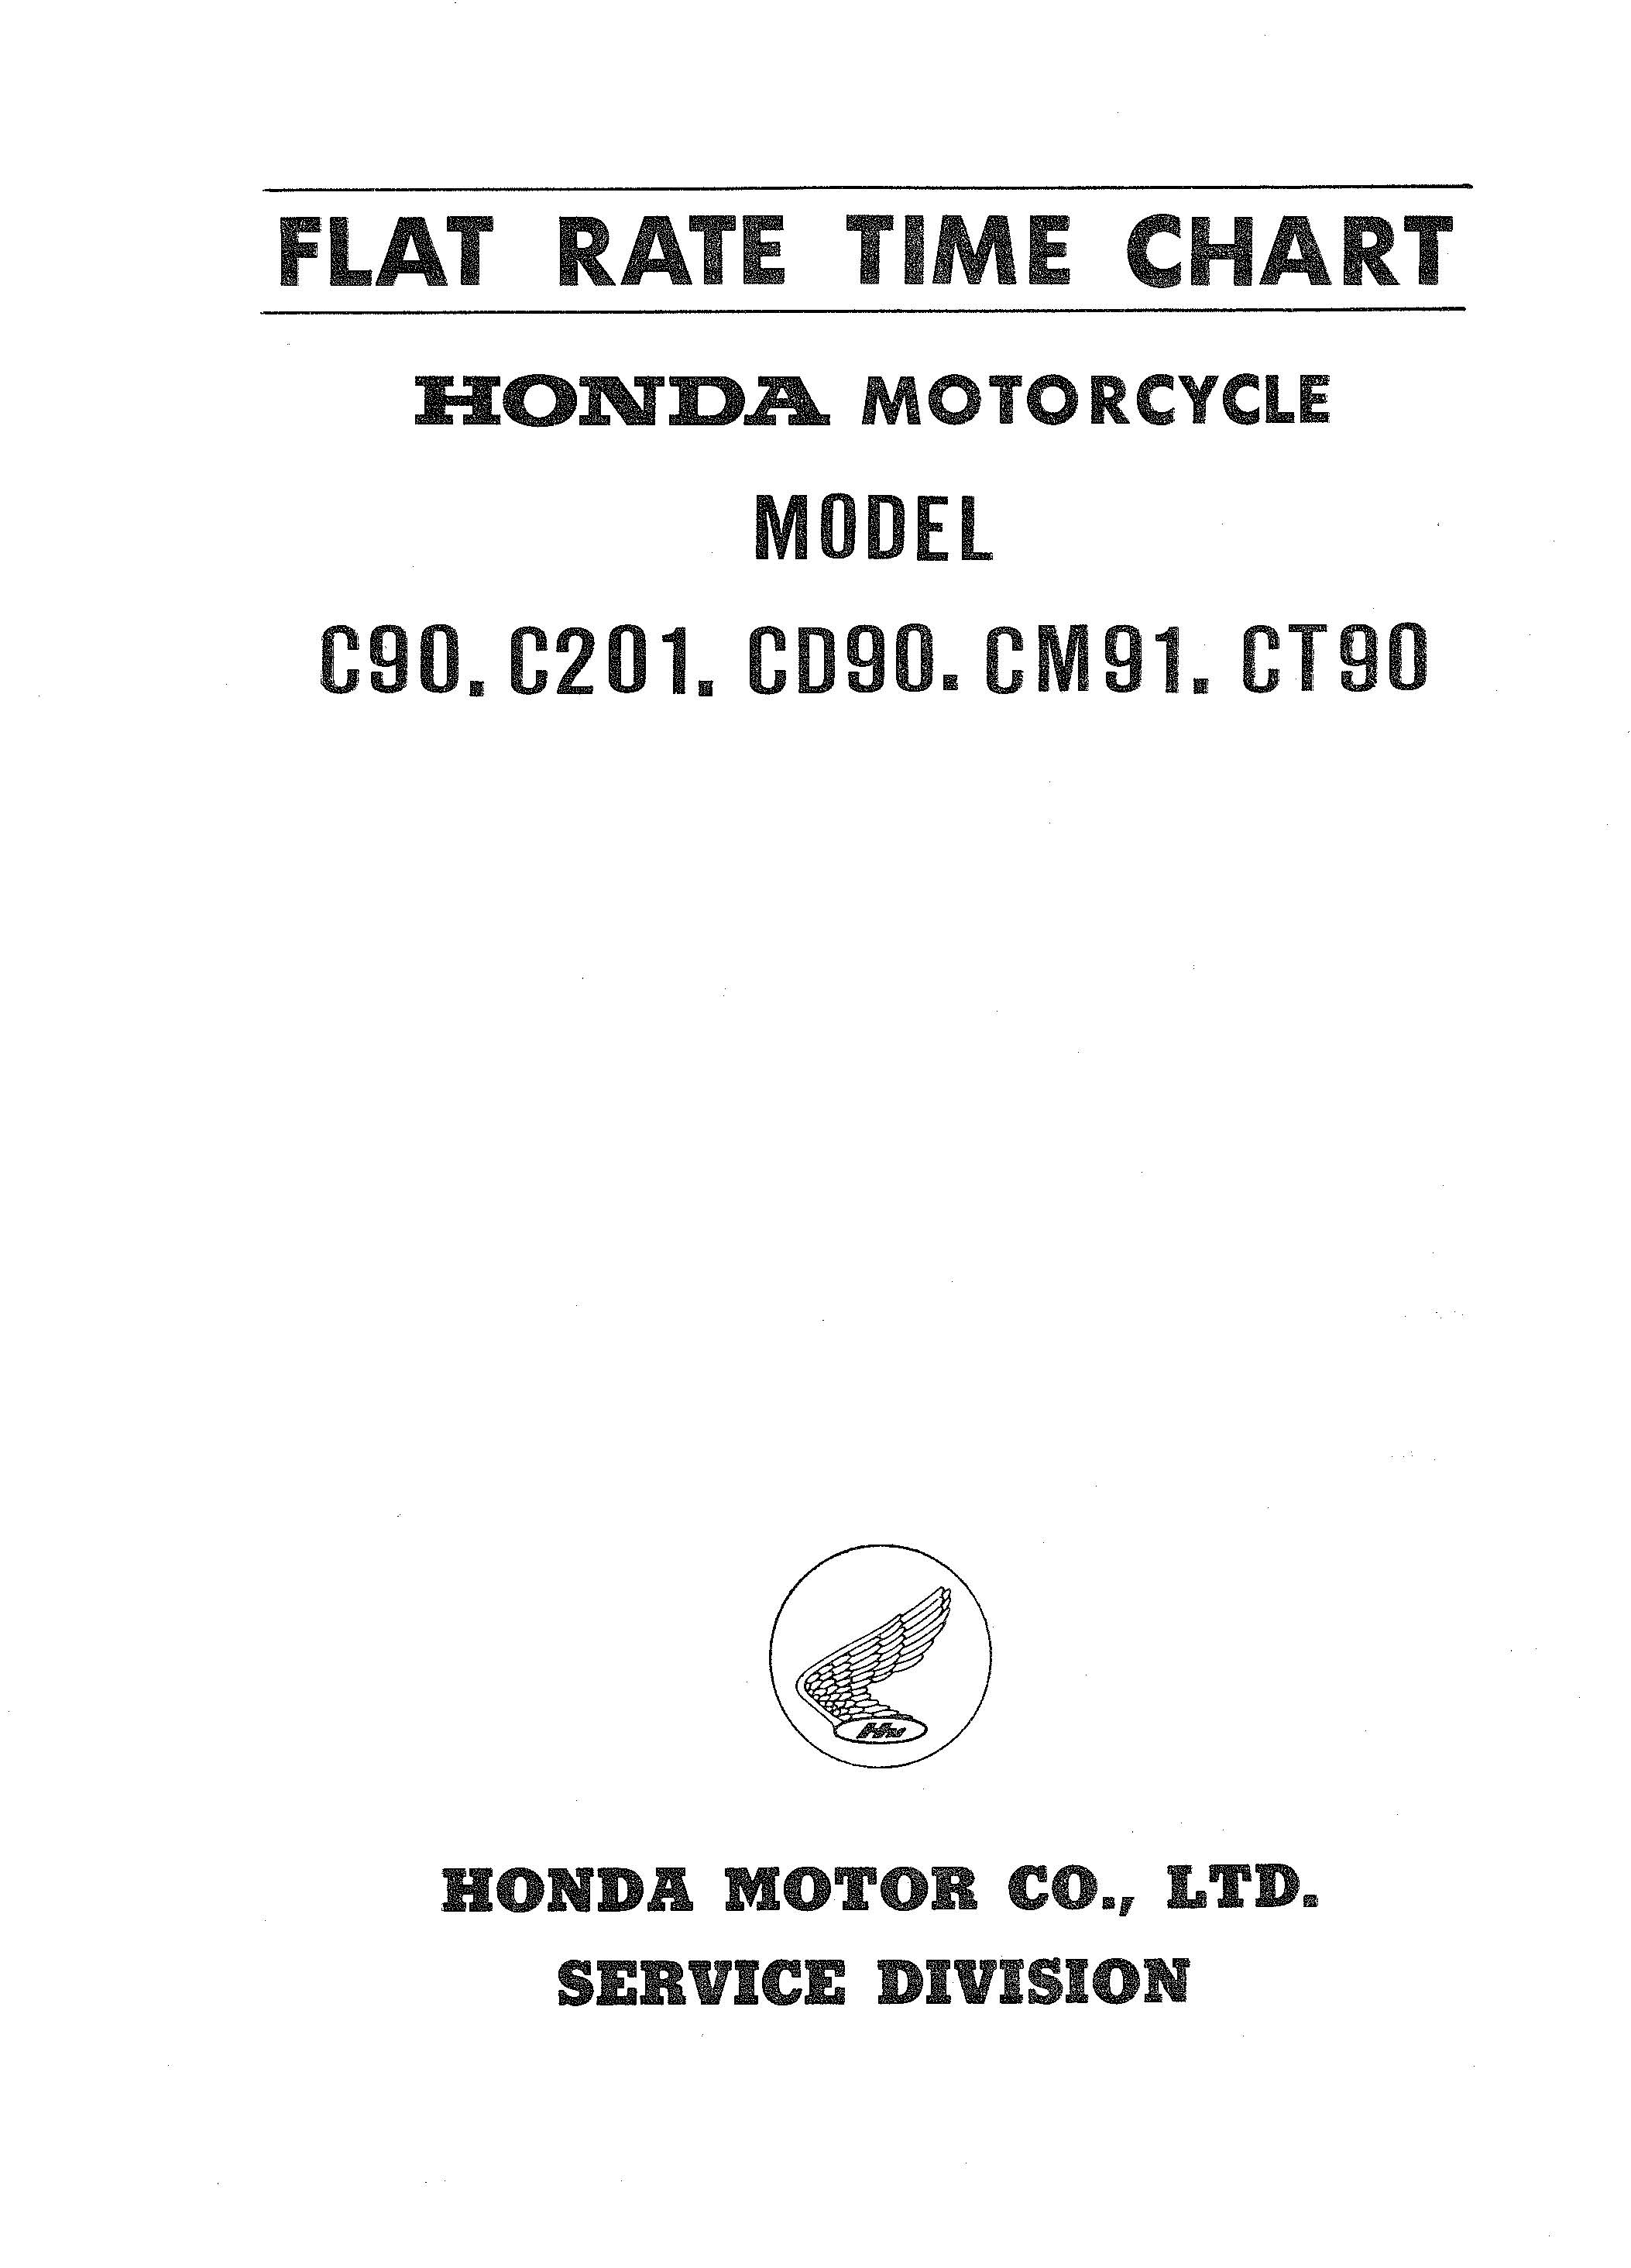 Parts list for Honda CM91 (1967)